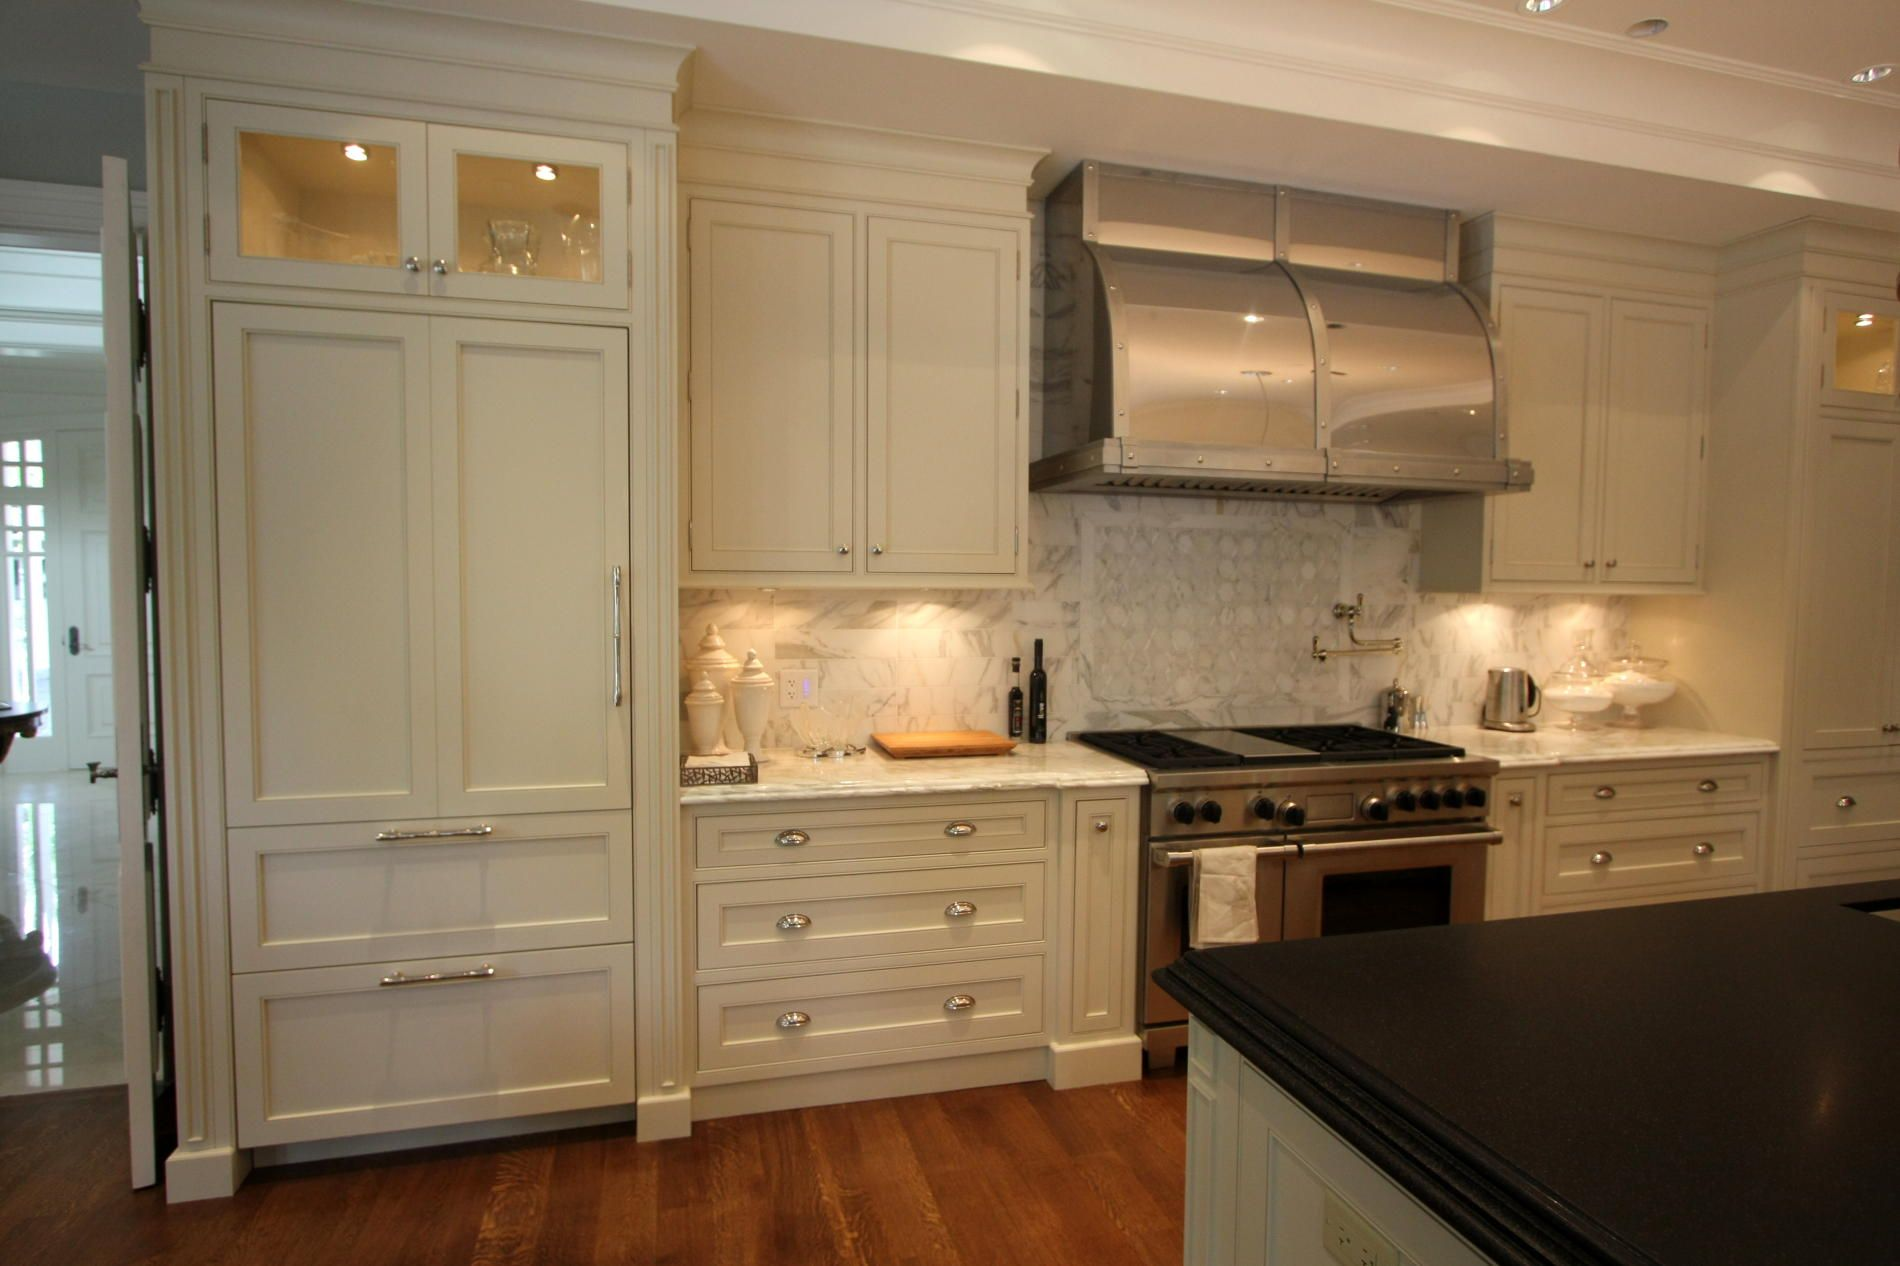 Victorian Kitchen Designs Traditional Victorian Cabinets For Classic Canadian City Home Kitchen Cabinet Styles Home Kitchens Glass Kitchen Cabinet Doors